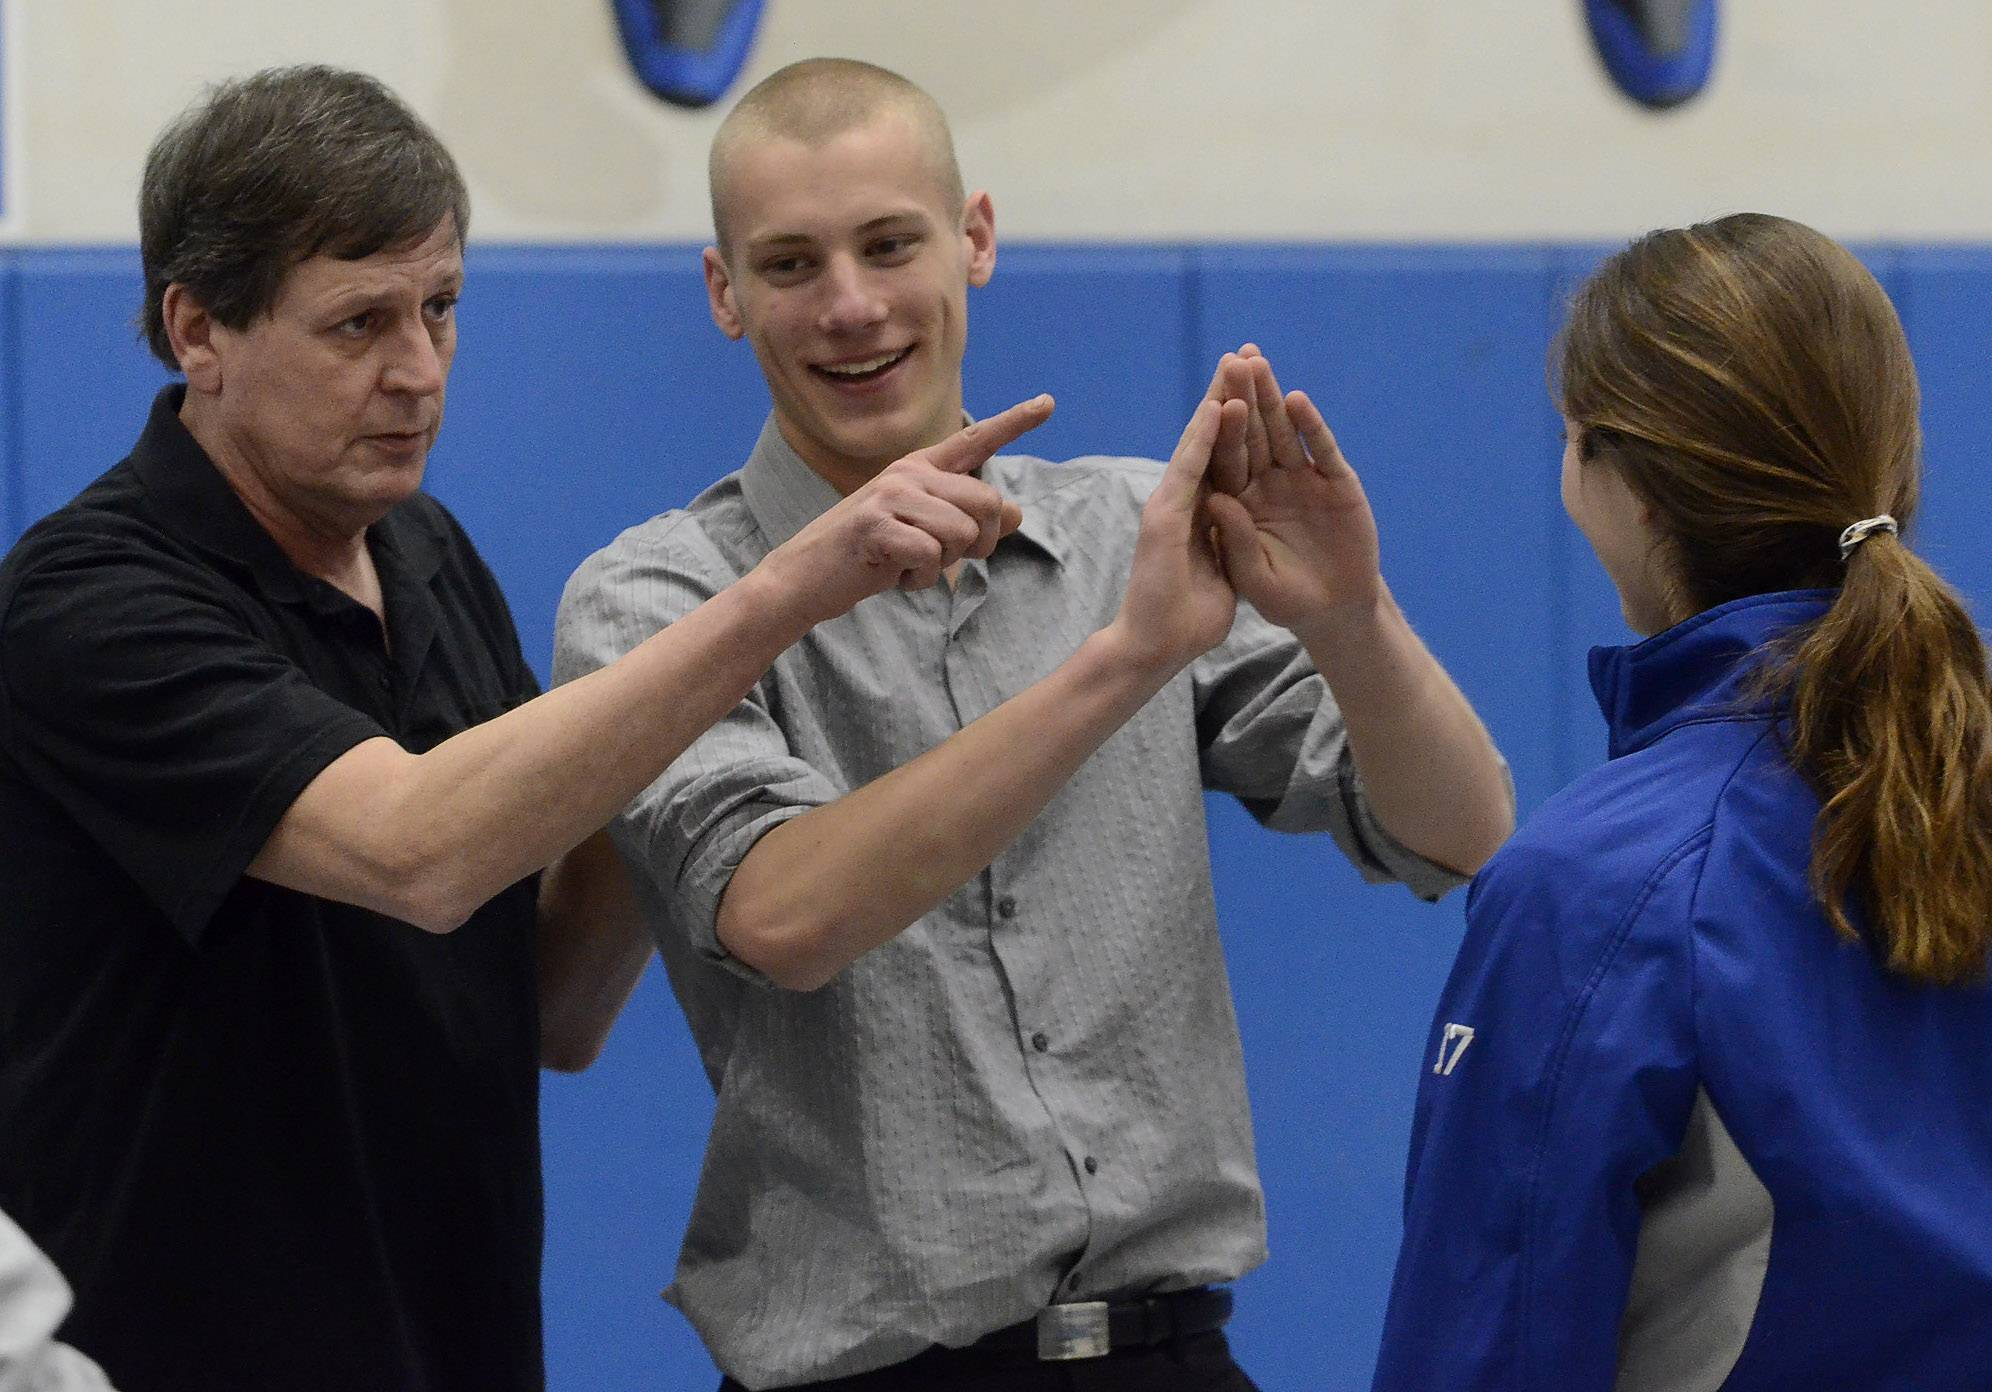 Self-defense expert Michael Theriault of The Brave Way LLC in Mundelein, teaches Vernon Hills High School students Kyle Whitney and Mallory Rose self-defense tactics.